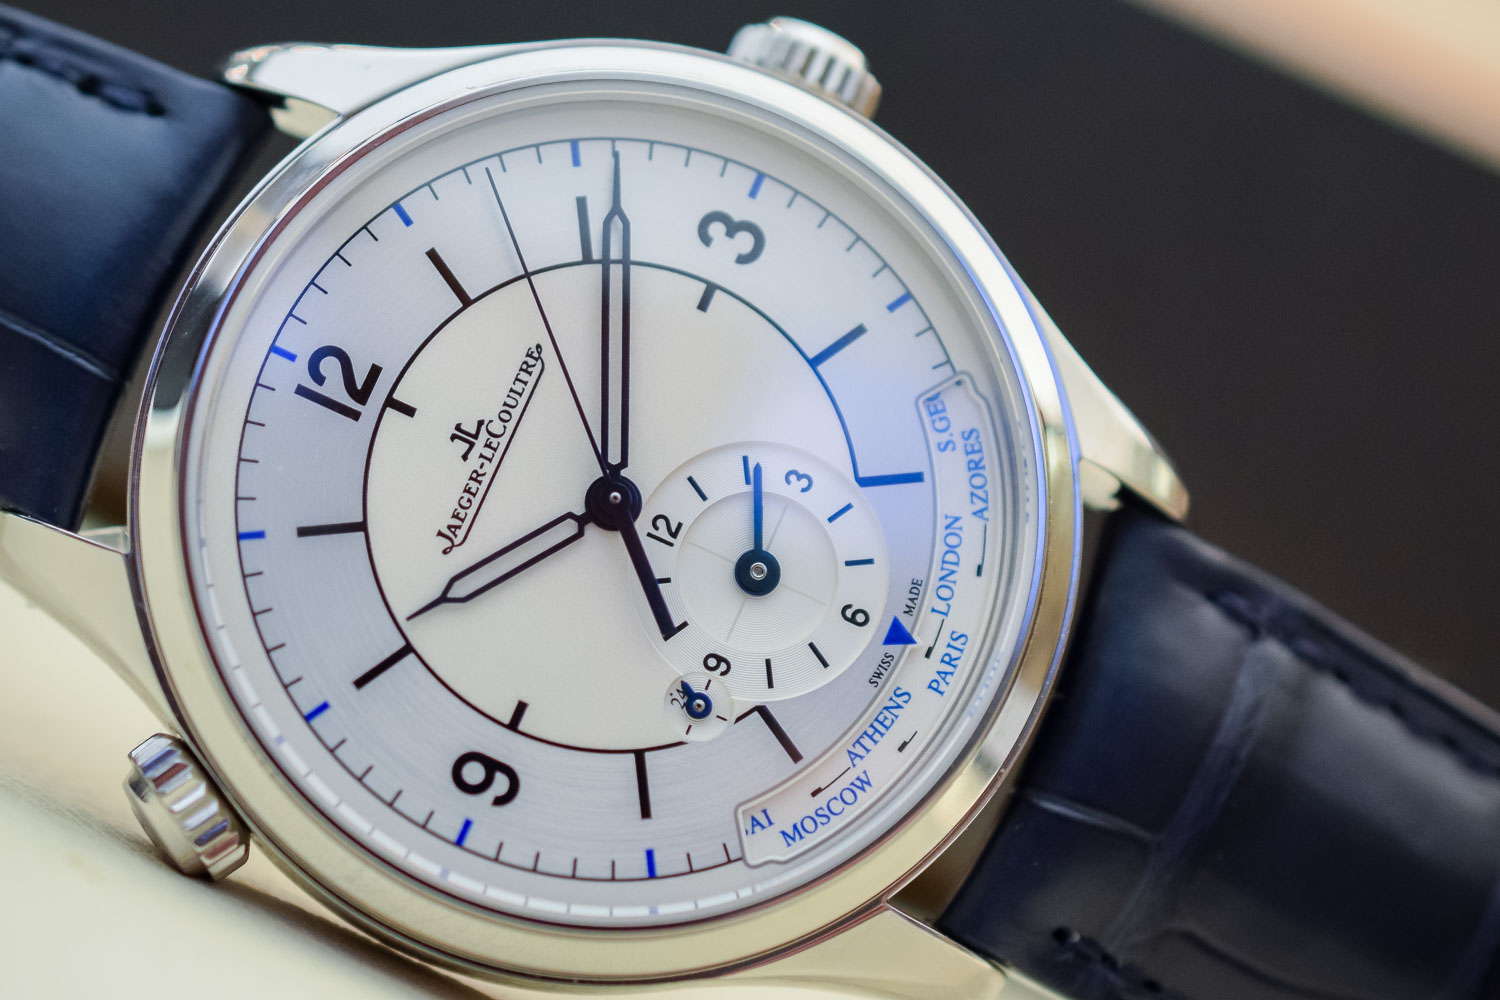 Jaeger-LeCoultre Master Goegraphic Sector Dial